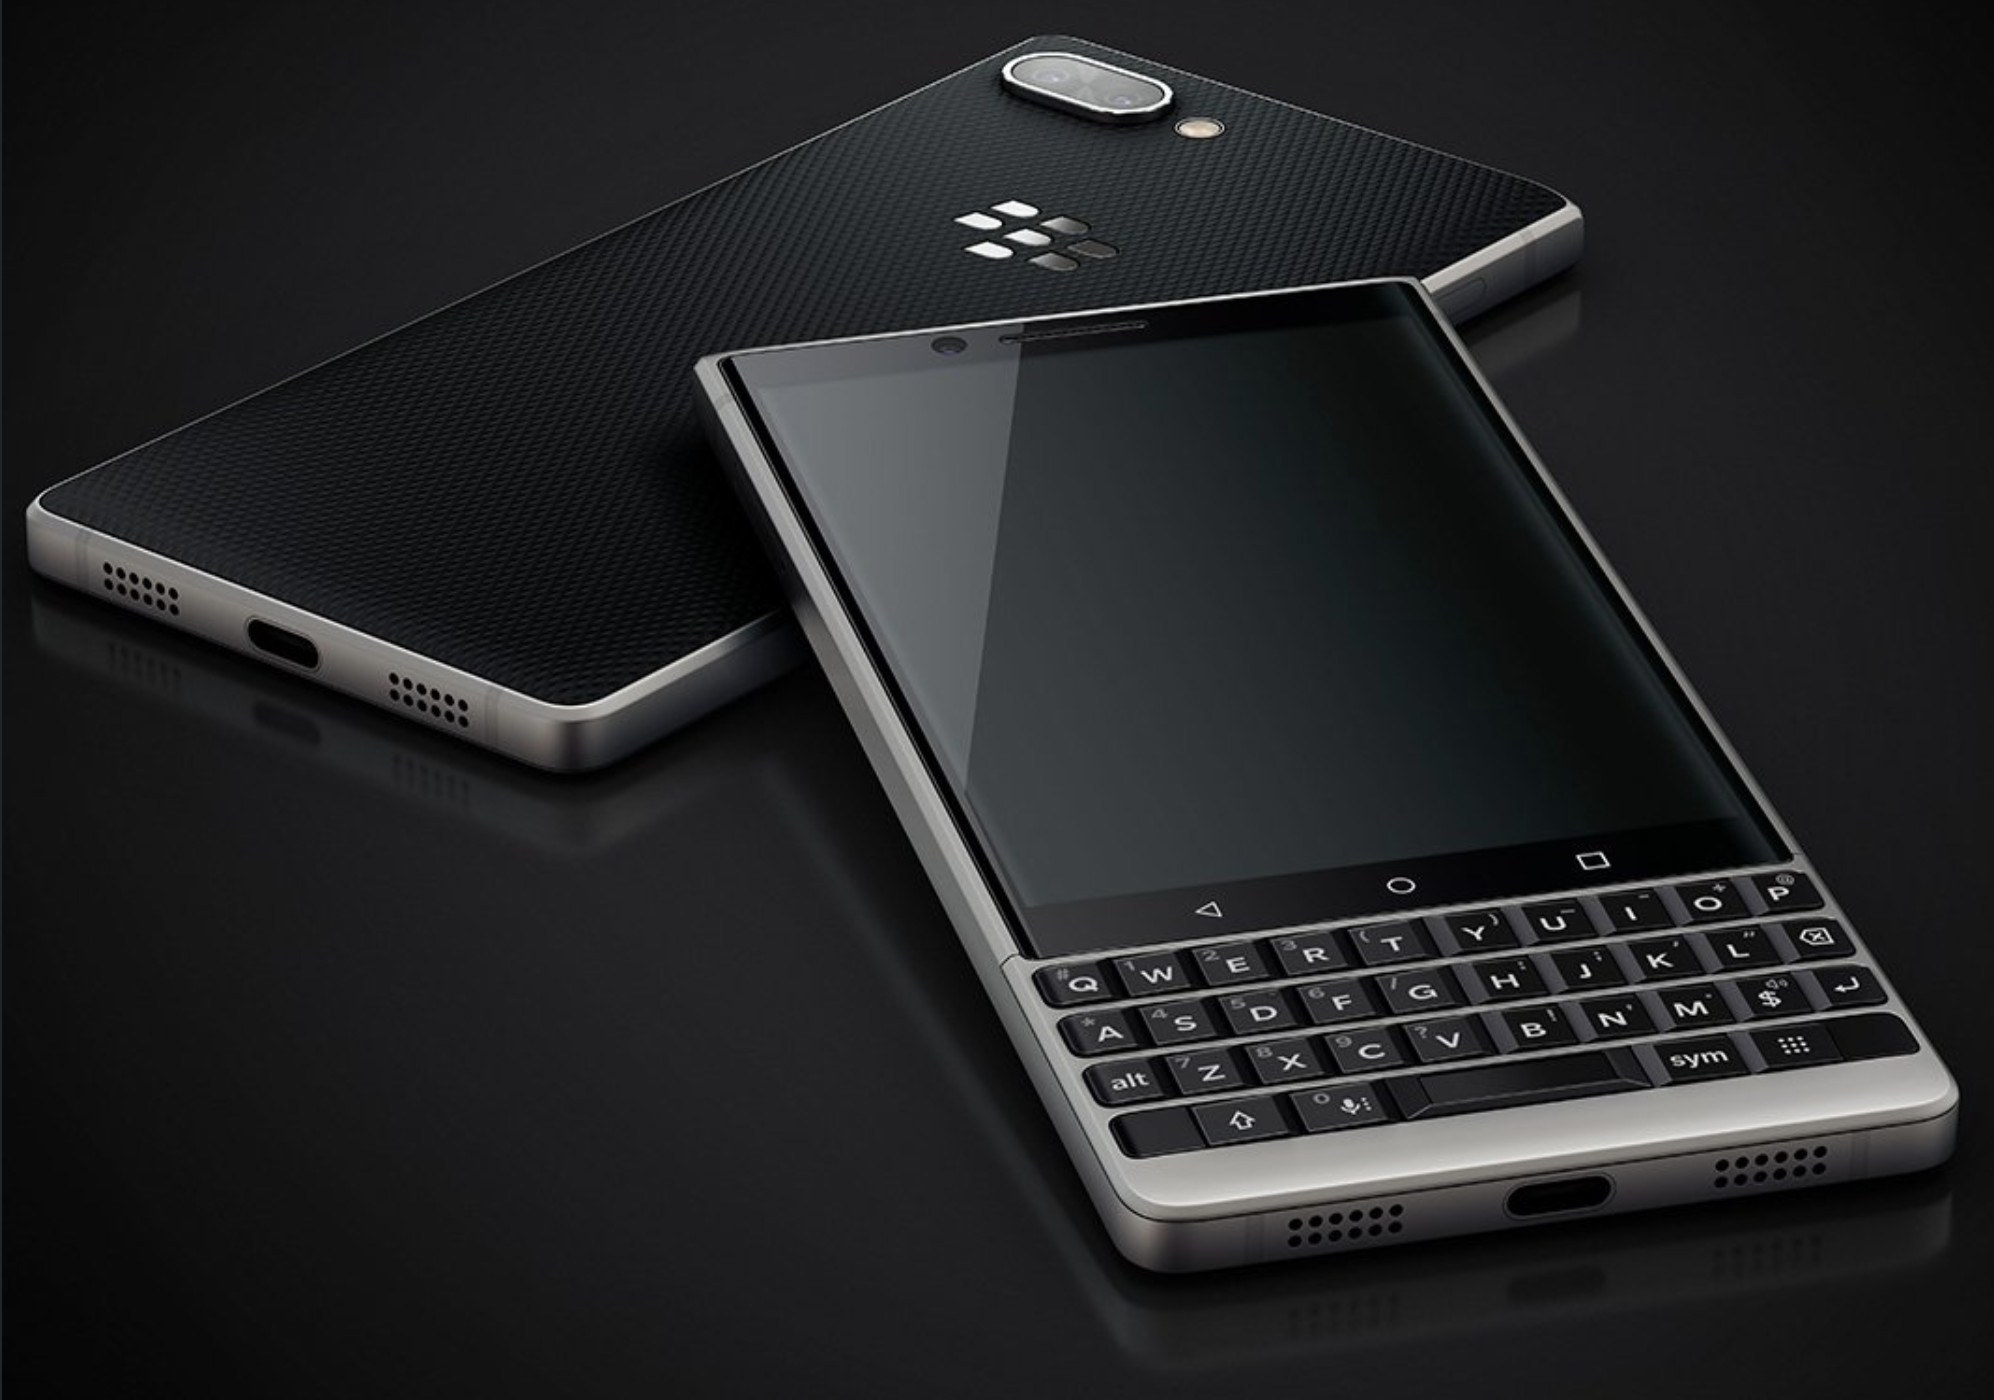 BlackBerry Key2 images and specs leaked ahead of imminent release date